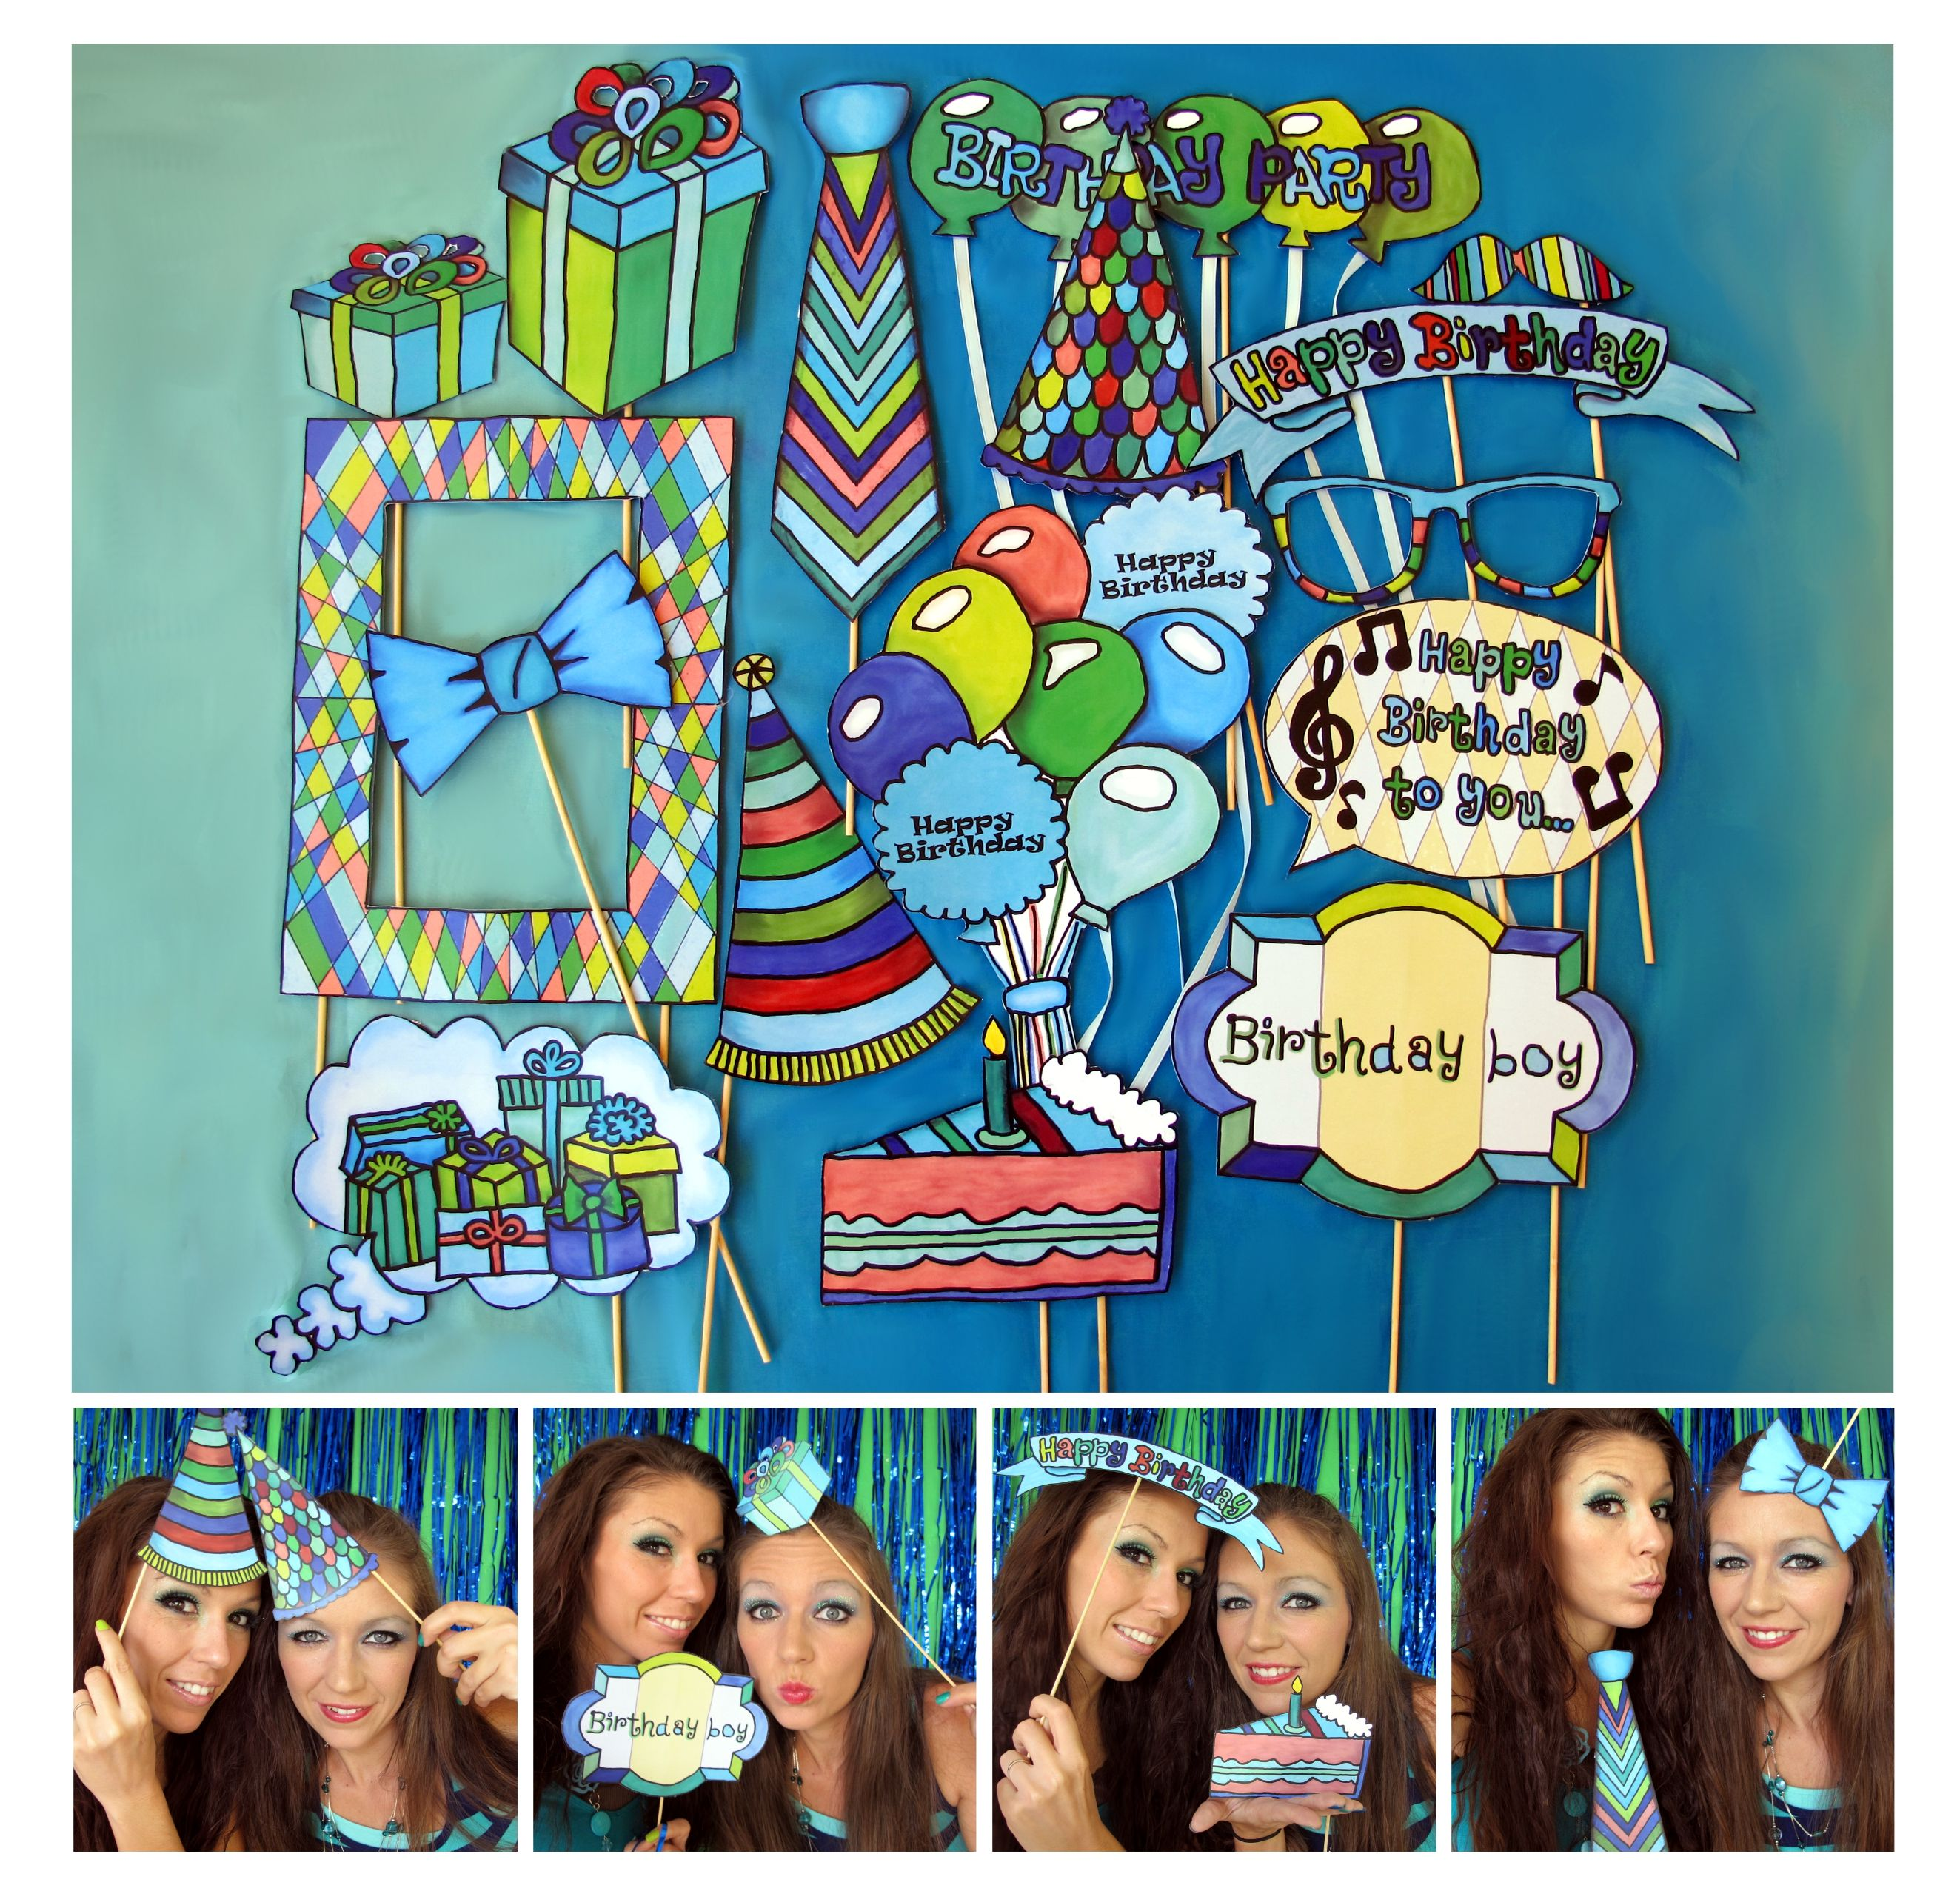 Photo Booth Prop Ideas: Boy Birthday Photo Booth Props In Blue, Green And Brown